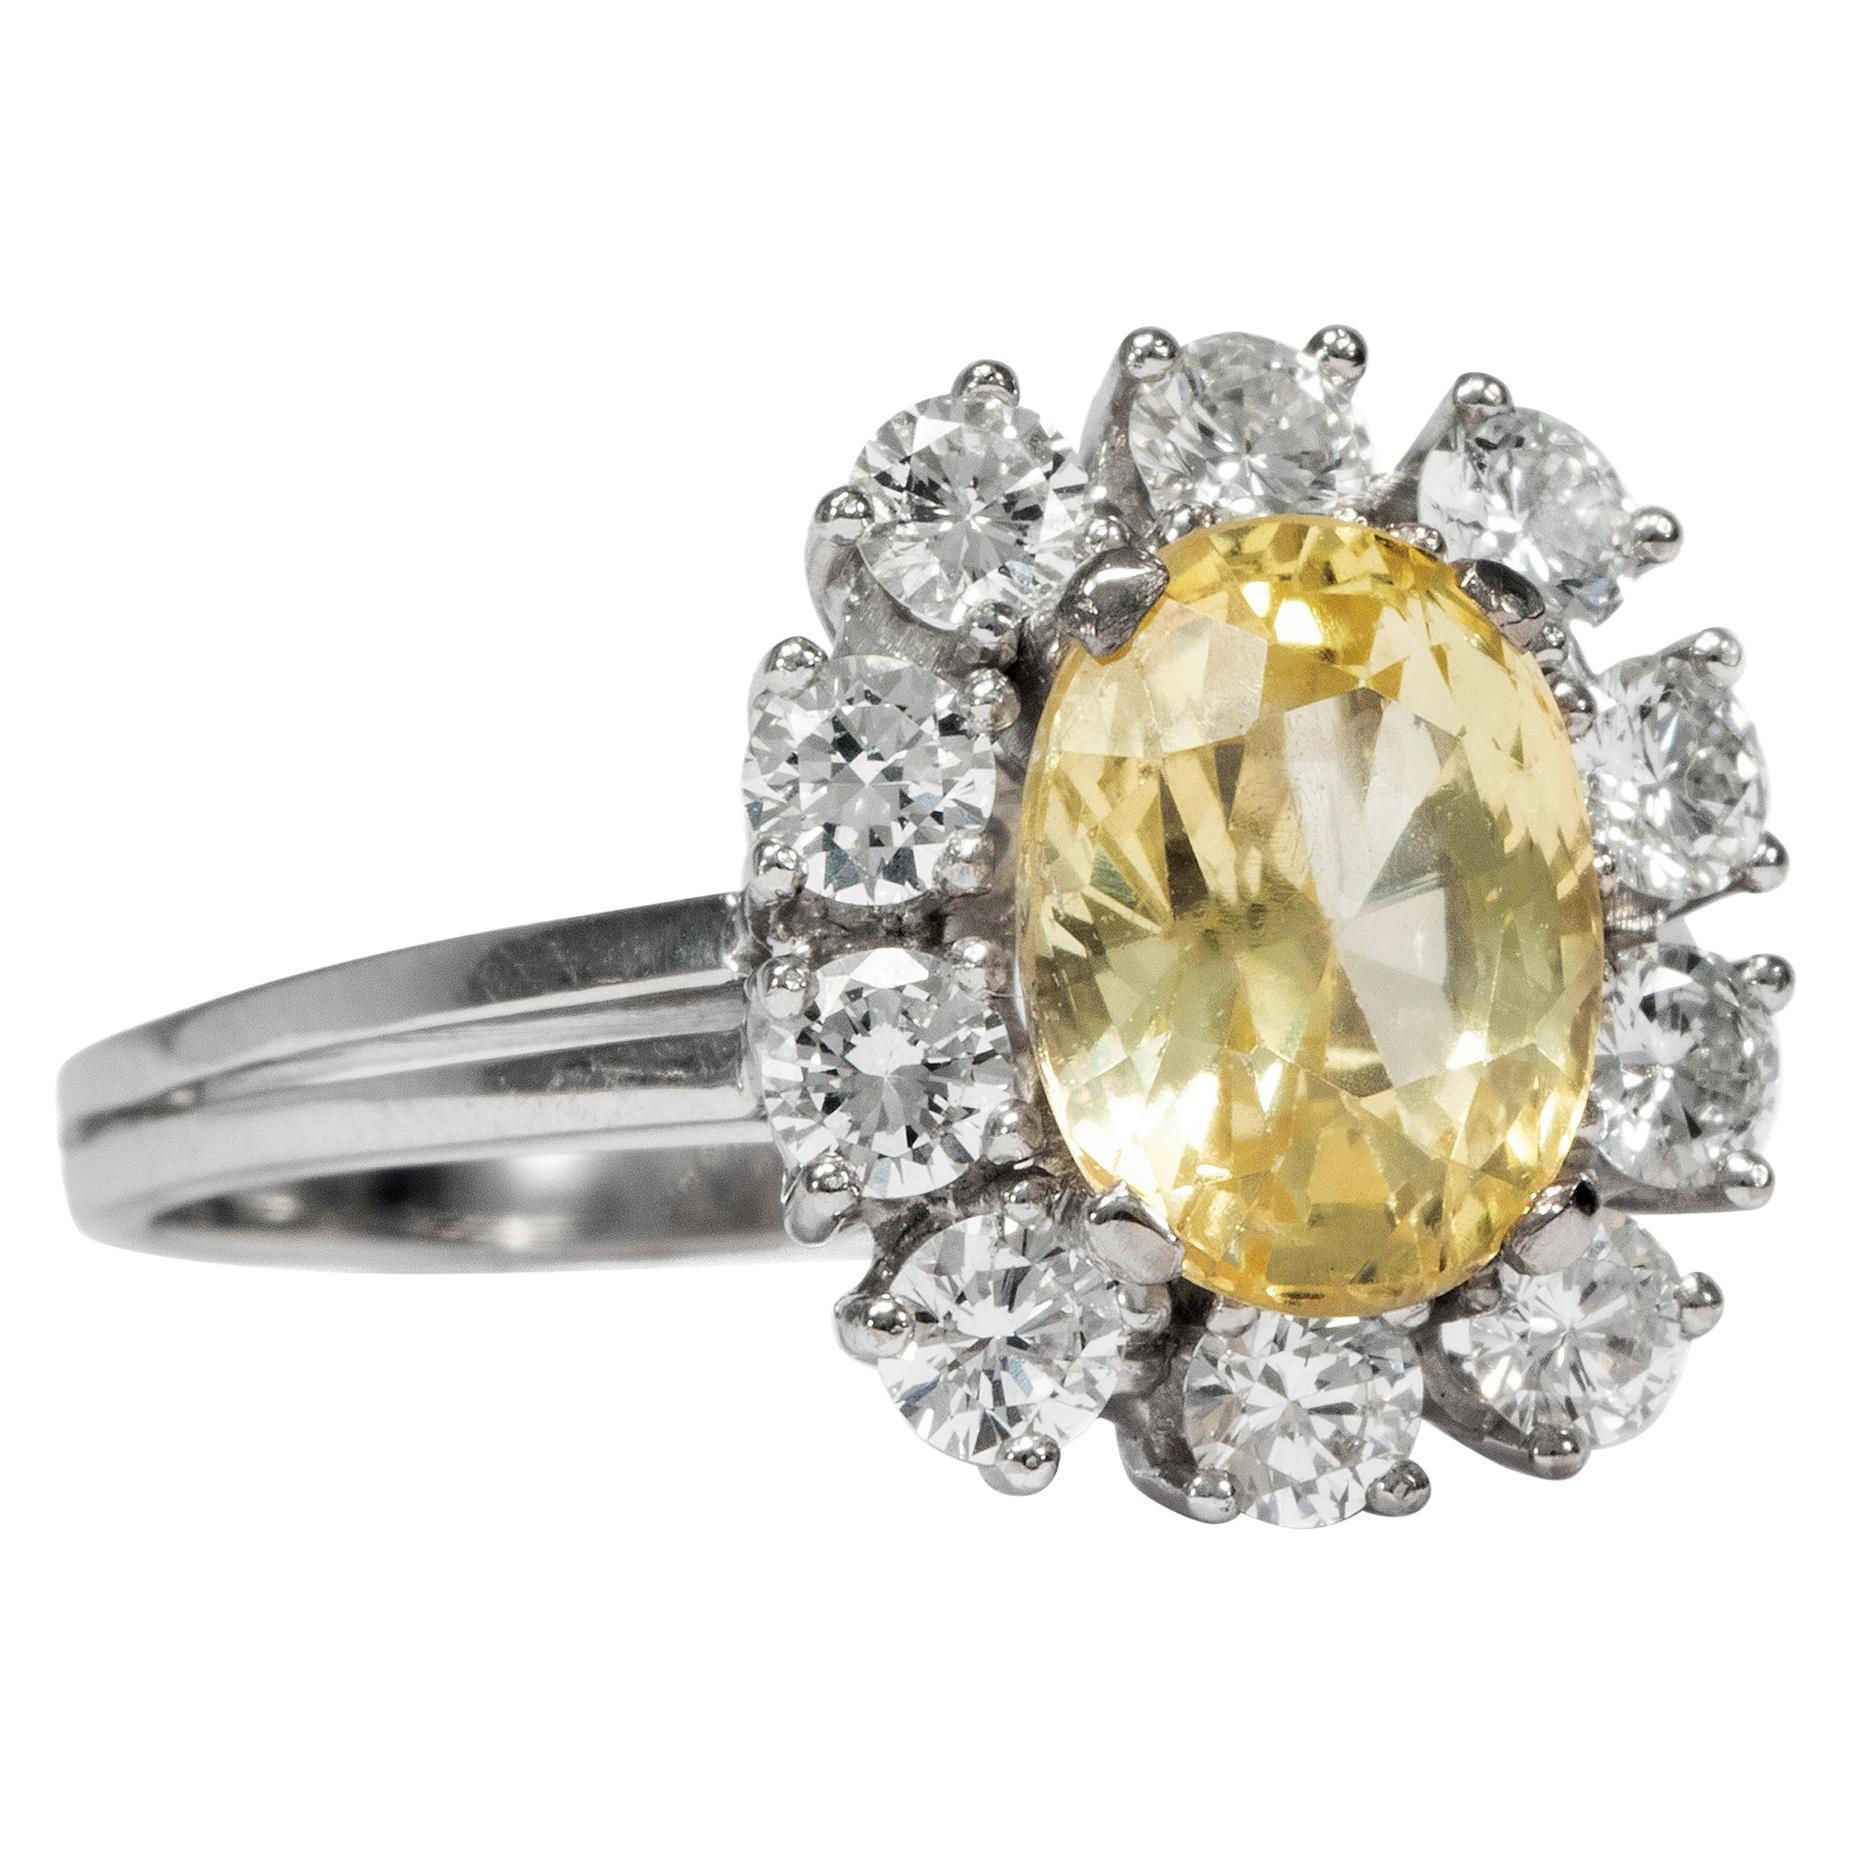 d954ea5f1 Antique and Vintage Rings and Diamond Rings For Sale at 1stdibs